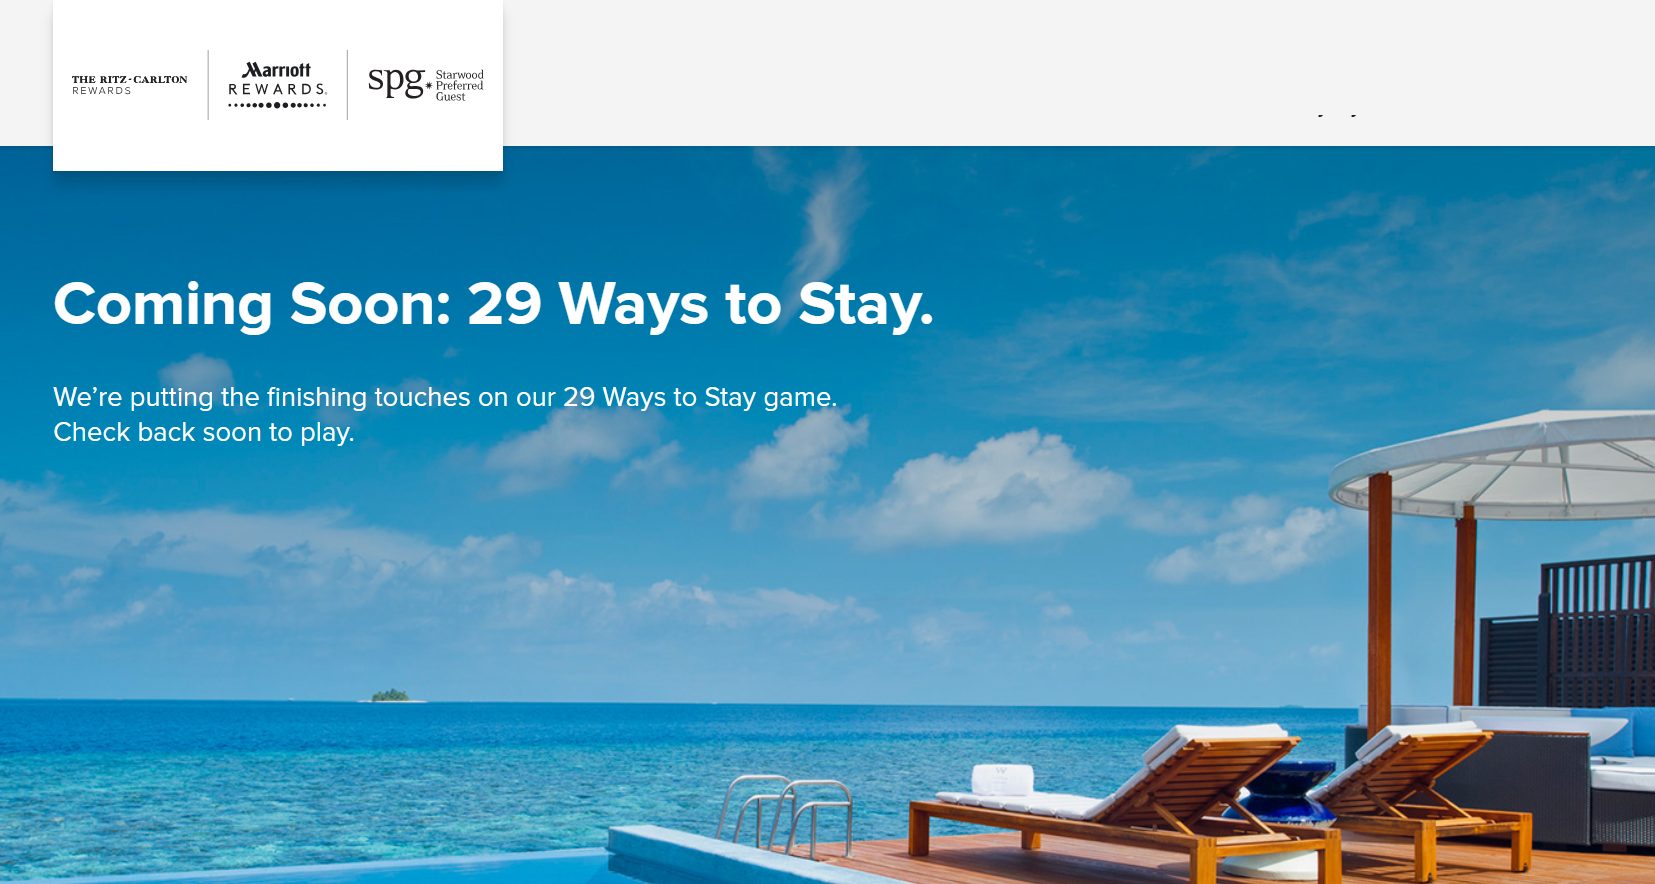 Marriott Rewards 29 Ways Sweepstakes With More Than 2,000,000 Prizes